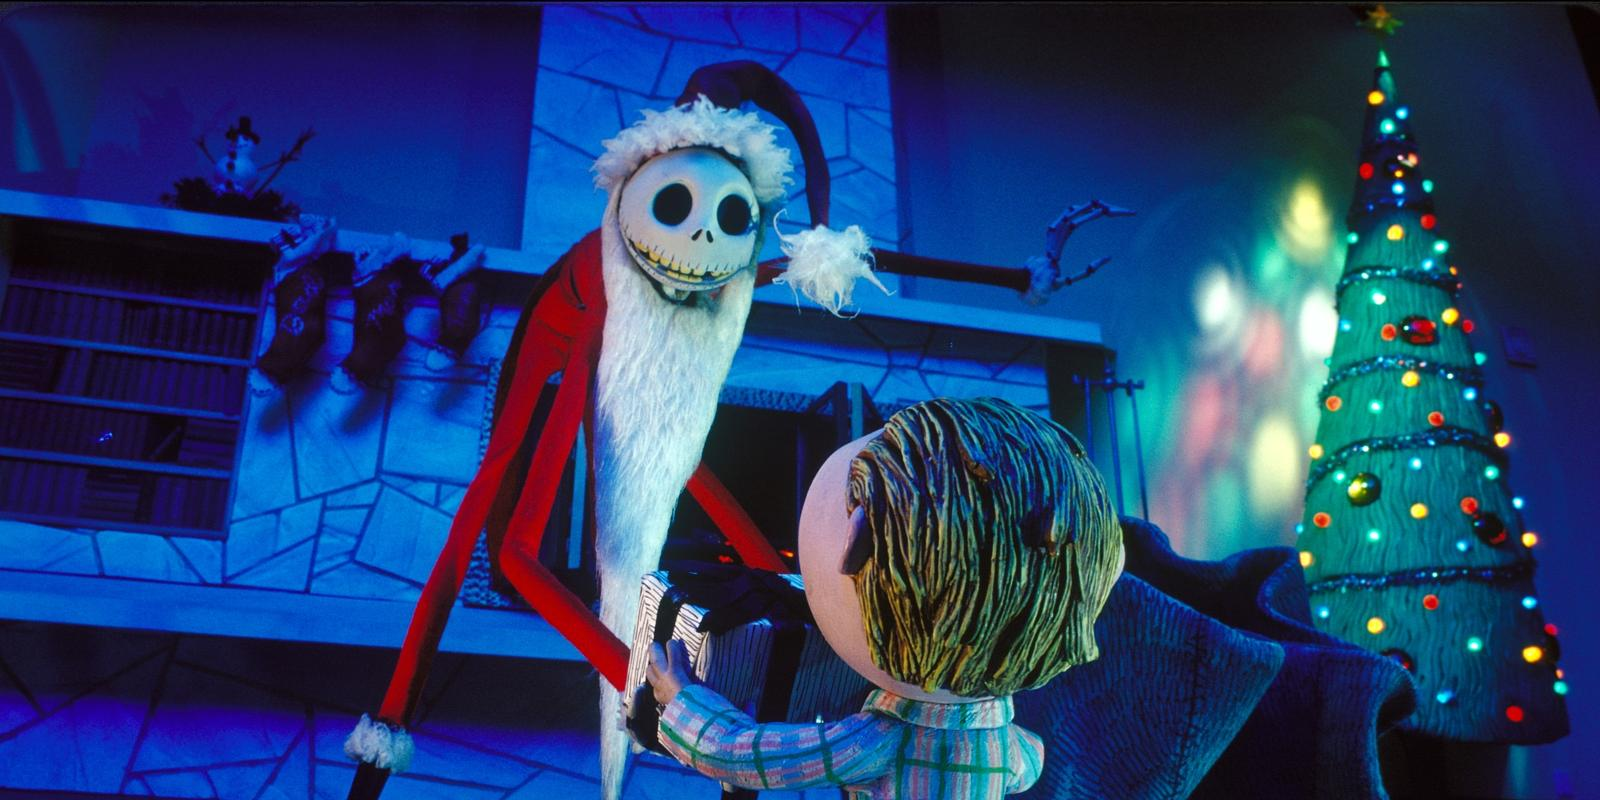 Making Christmas Scary: Why Do Christmas-Horror Films Exist?